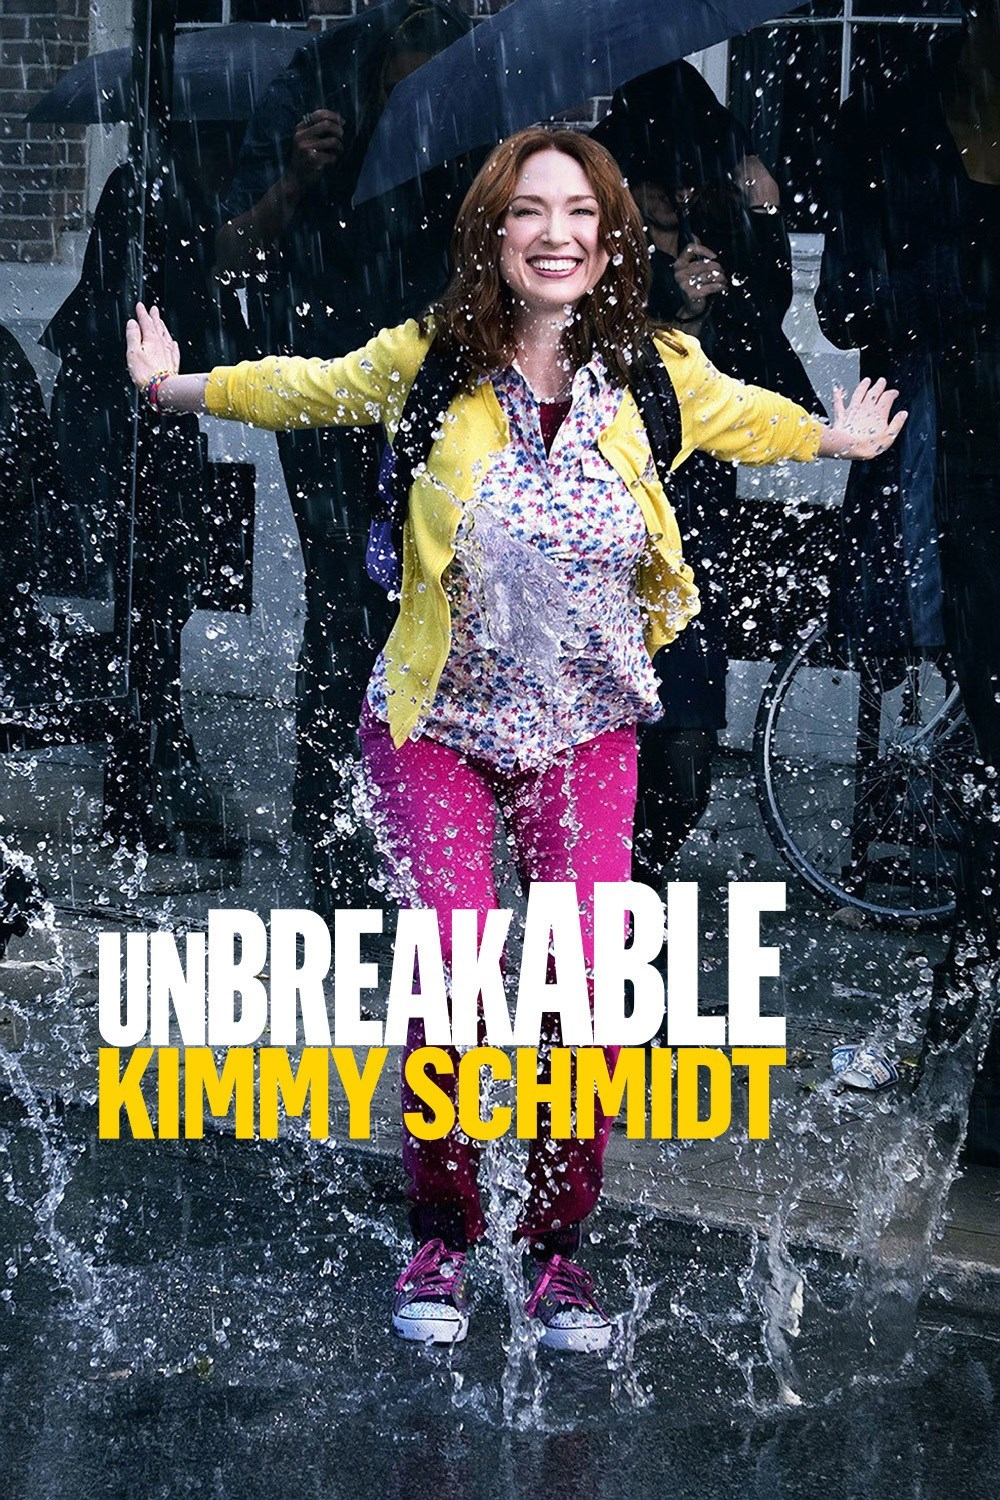 Image result for unbreakable kimmy schmidt